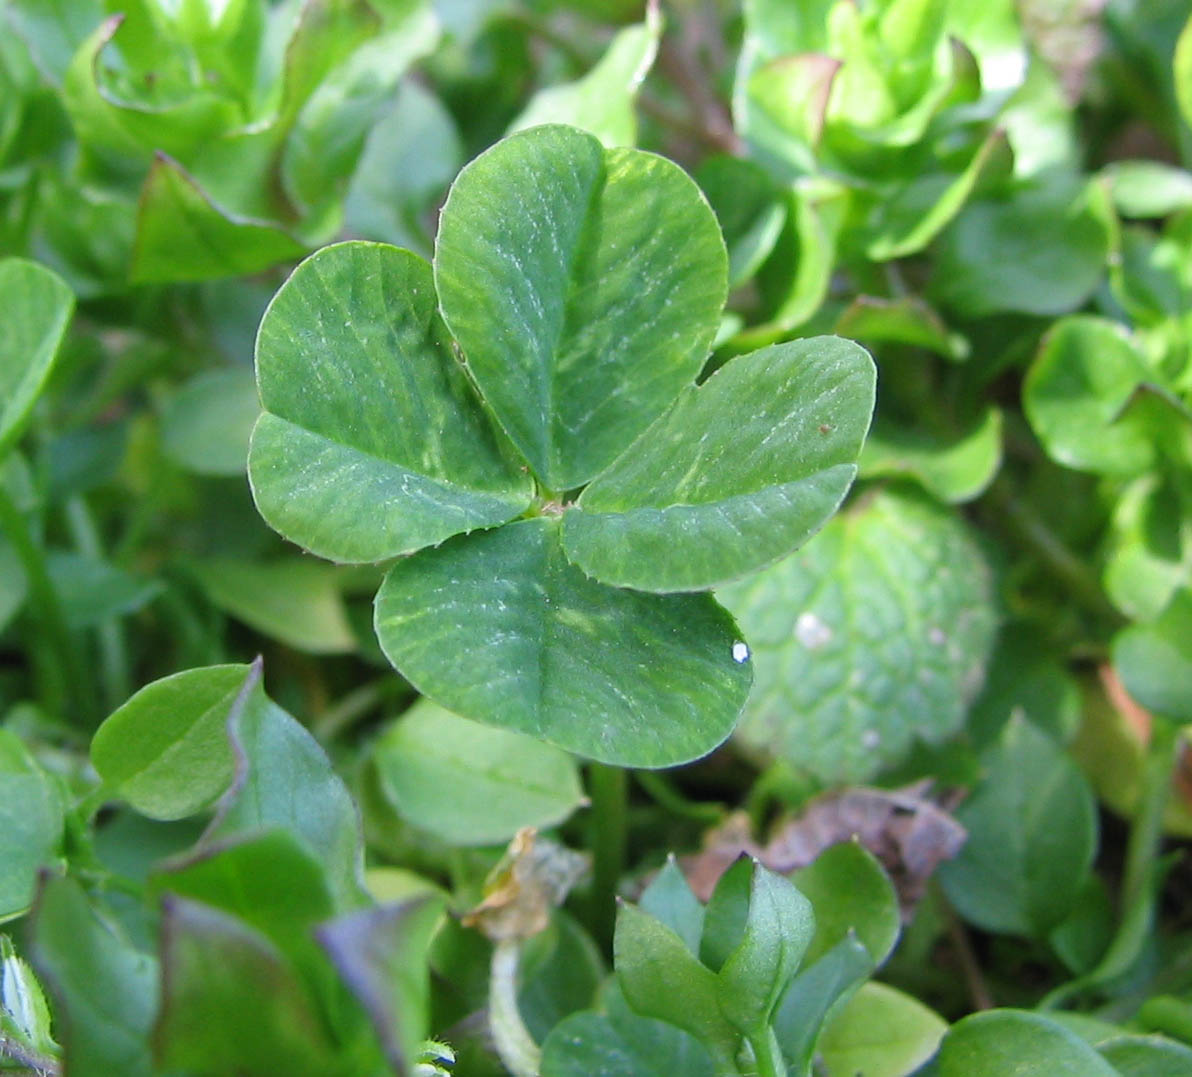 """As a kid I searched and searched for a four leaf clover. I never found one. I asked my dad how could I be lucky if I couldn't find one. His reply, """"You can make your own luck; it's all around you!."""""""